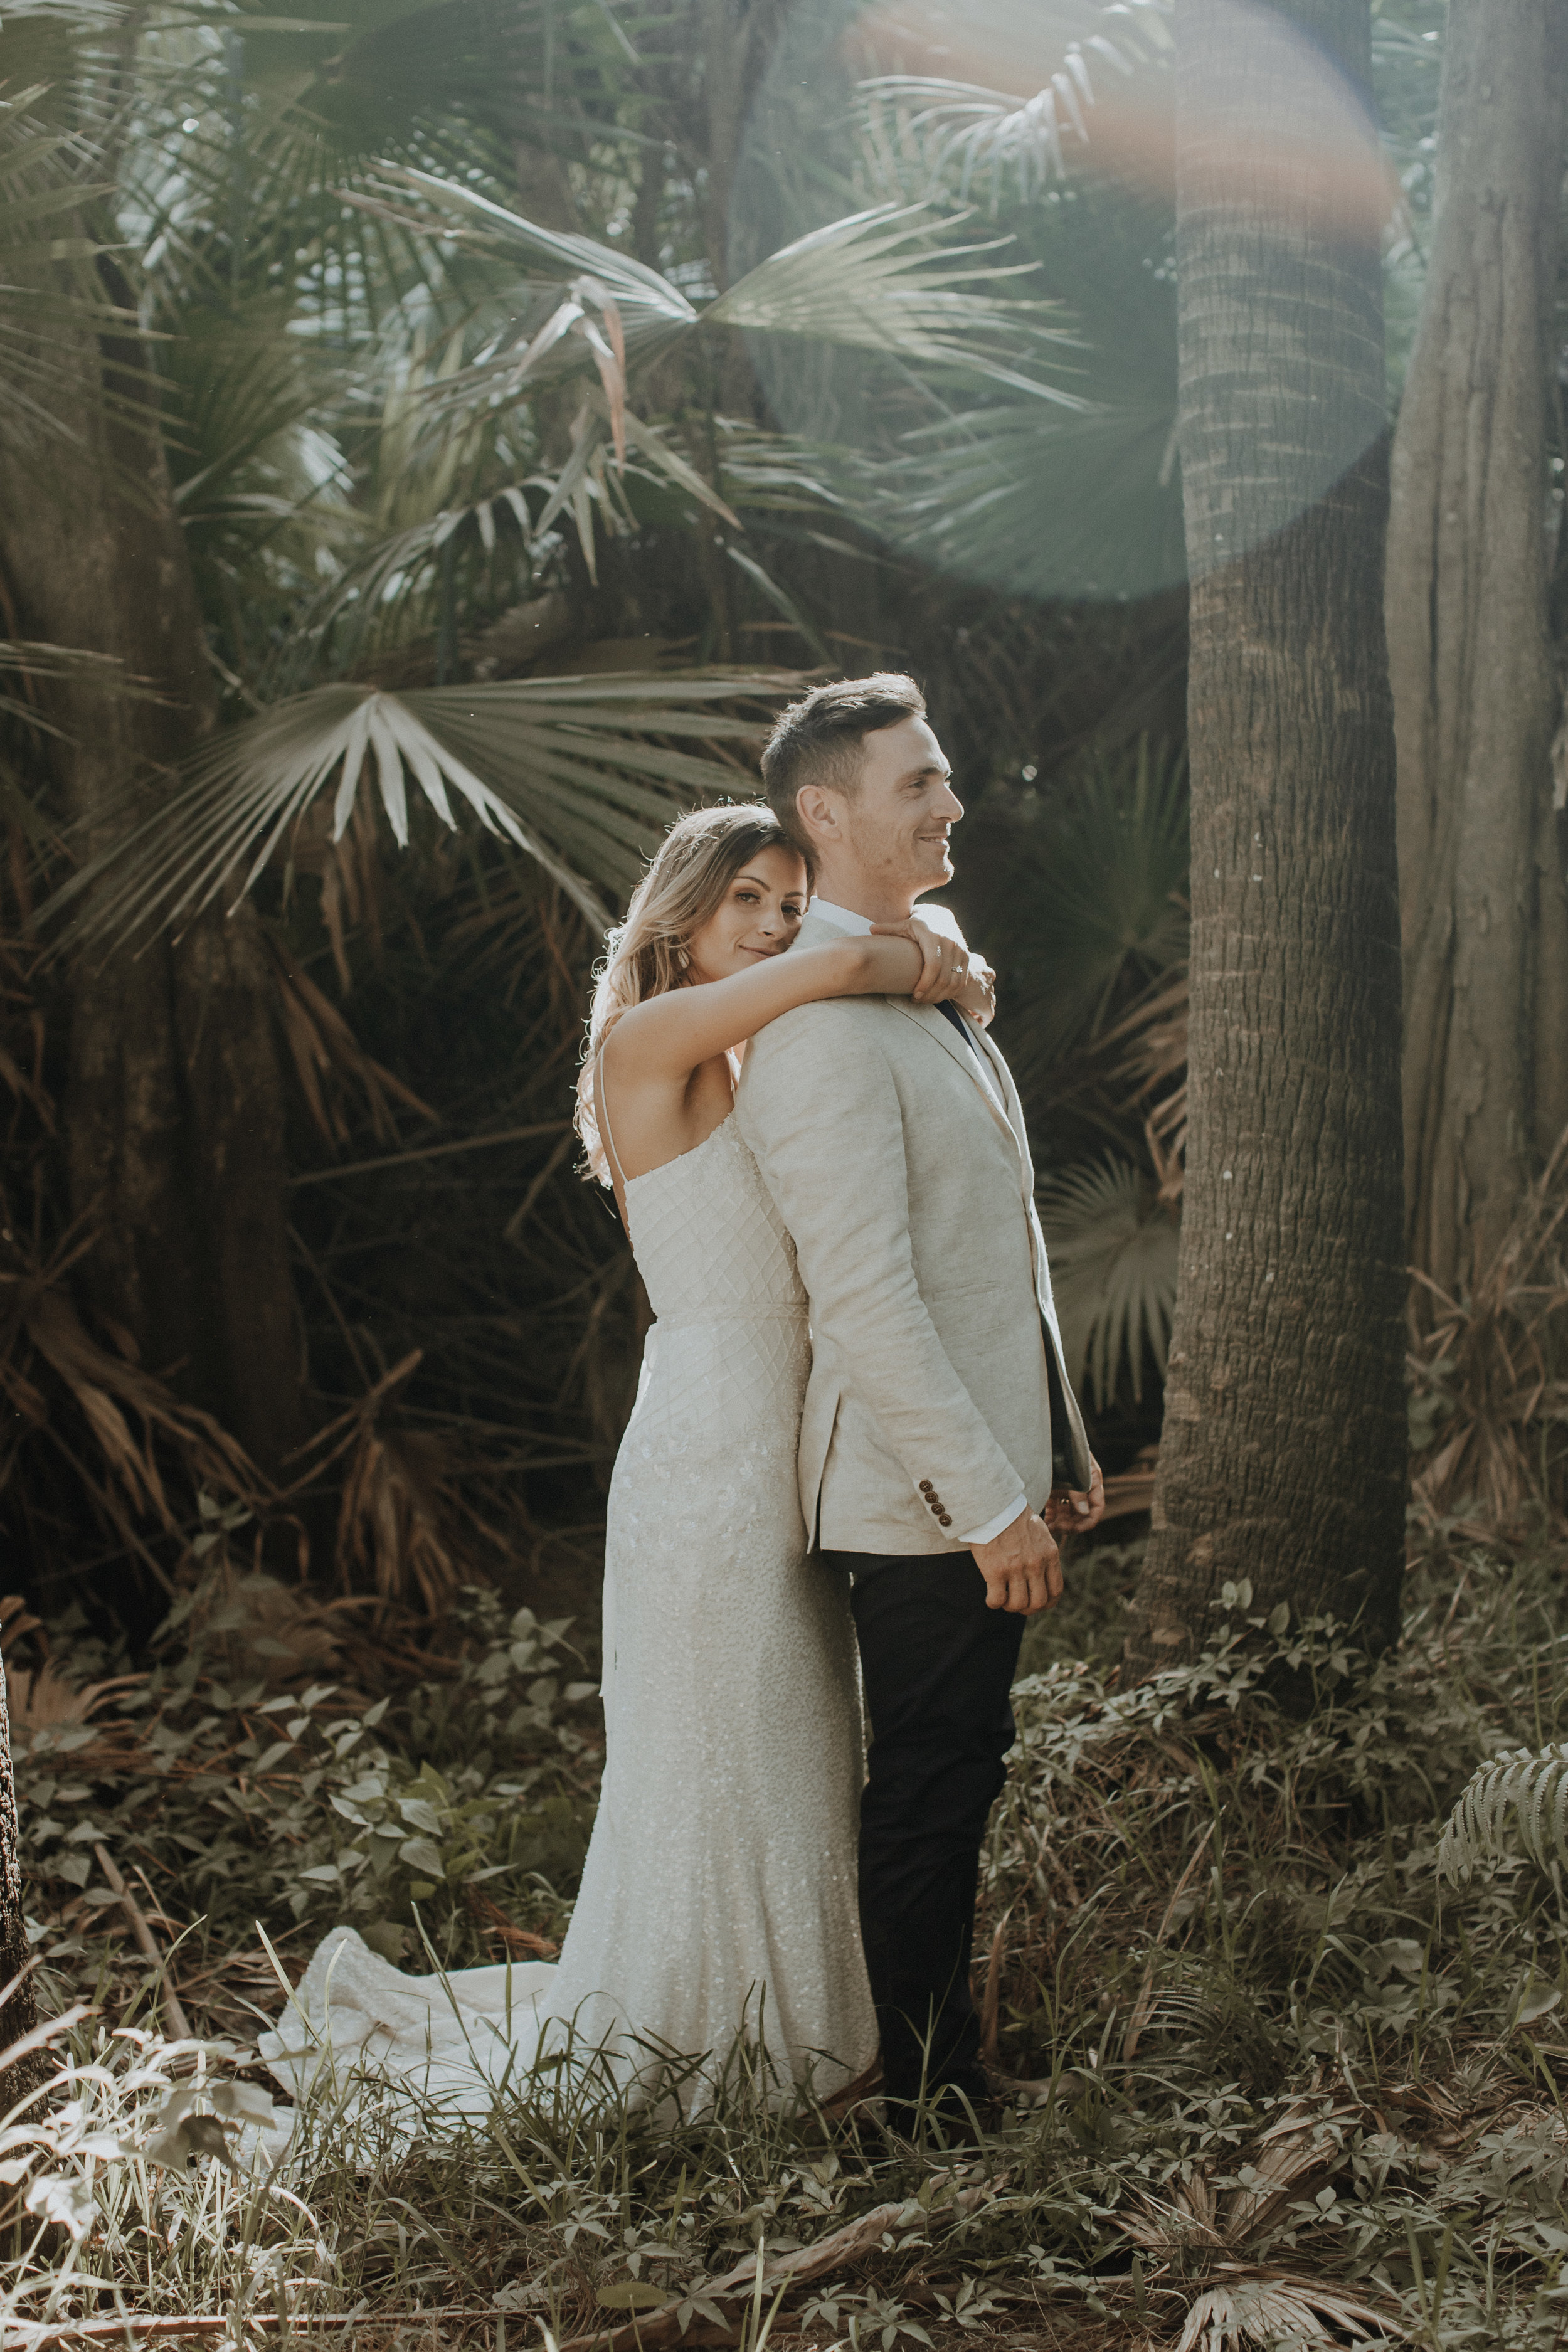 Sophie & Matt - Newcastle, New South Wales